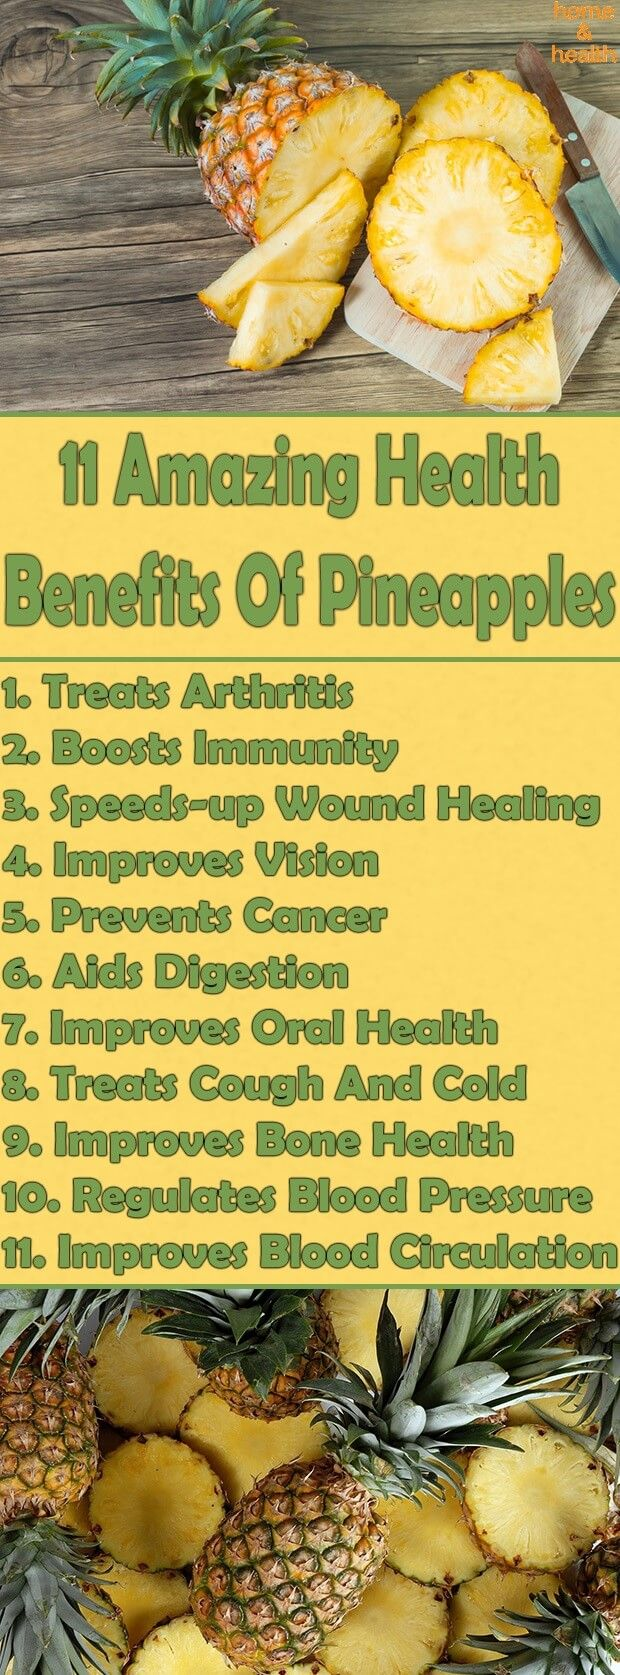 Pineapples have several health benefits due to their wealth of nutrients. They contain vitamins, and minerals, including potassium, copper, calcium, magnesium, vitamin C, beta-carotene, thiamin, vitamin B6, and folate.